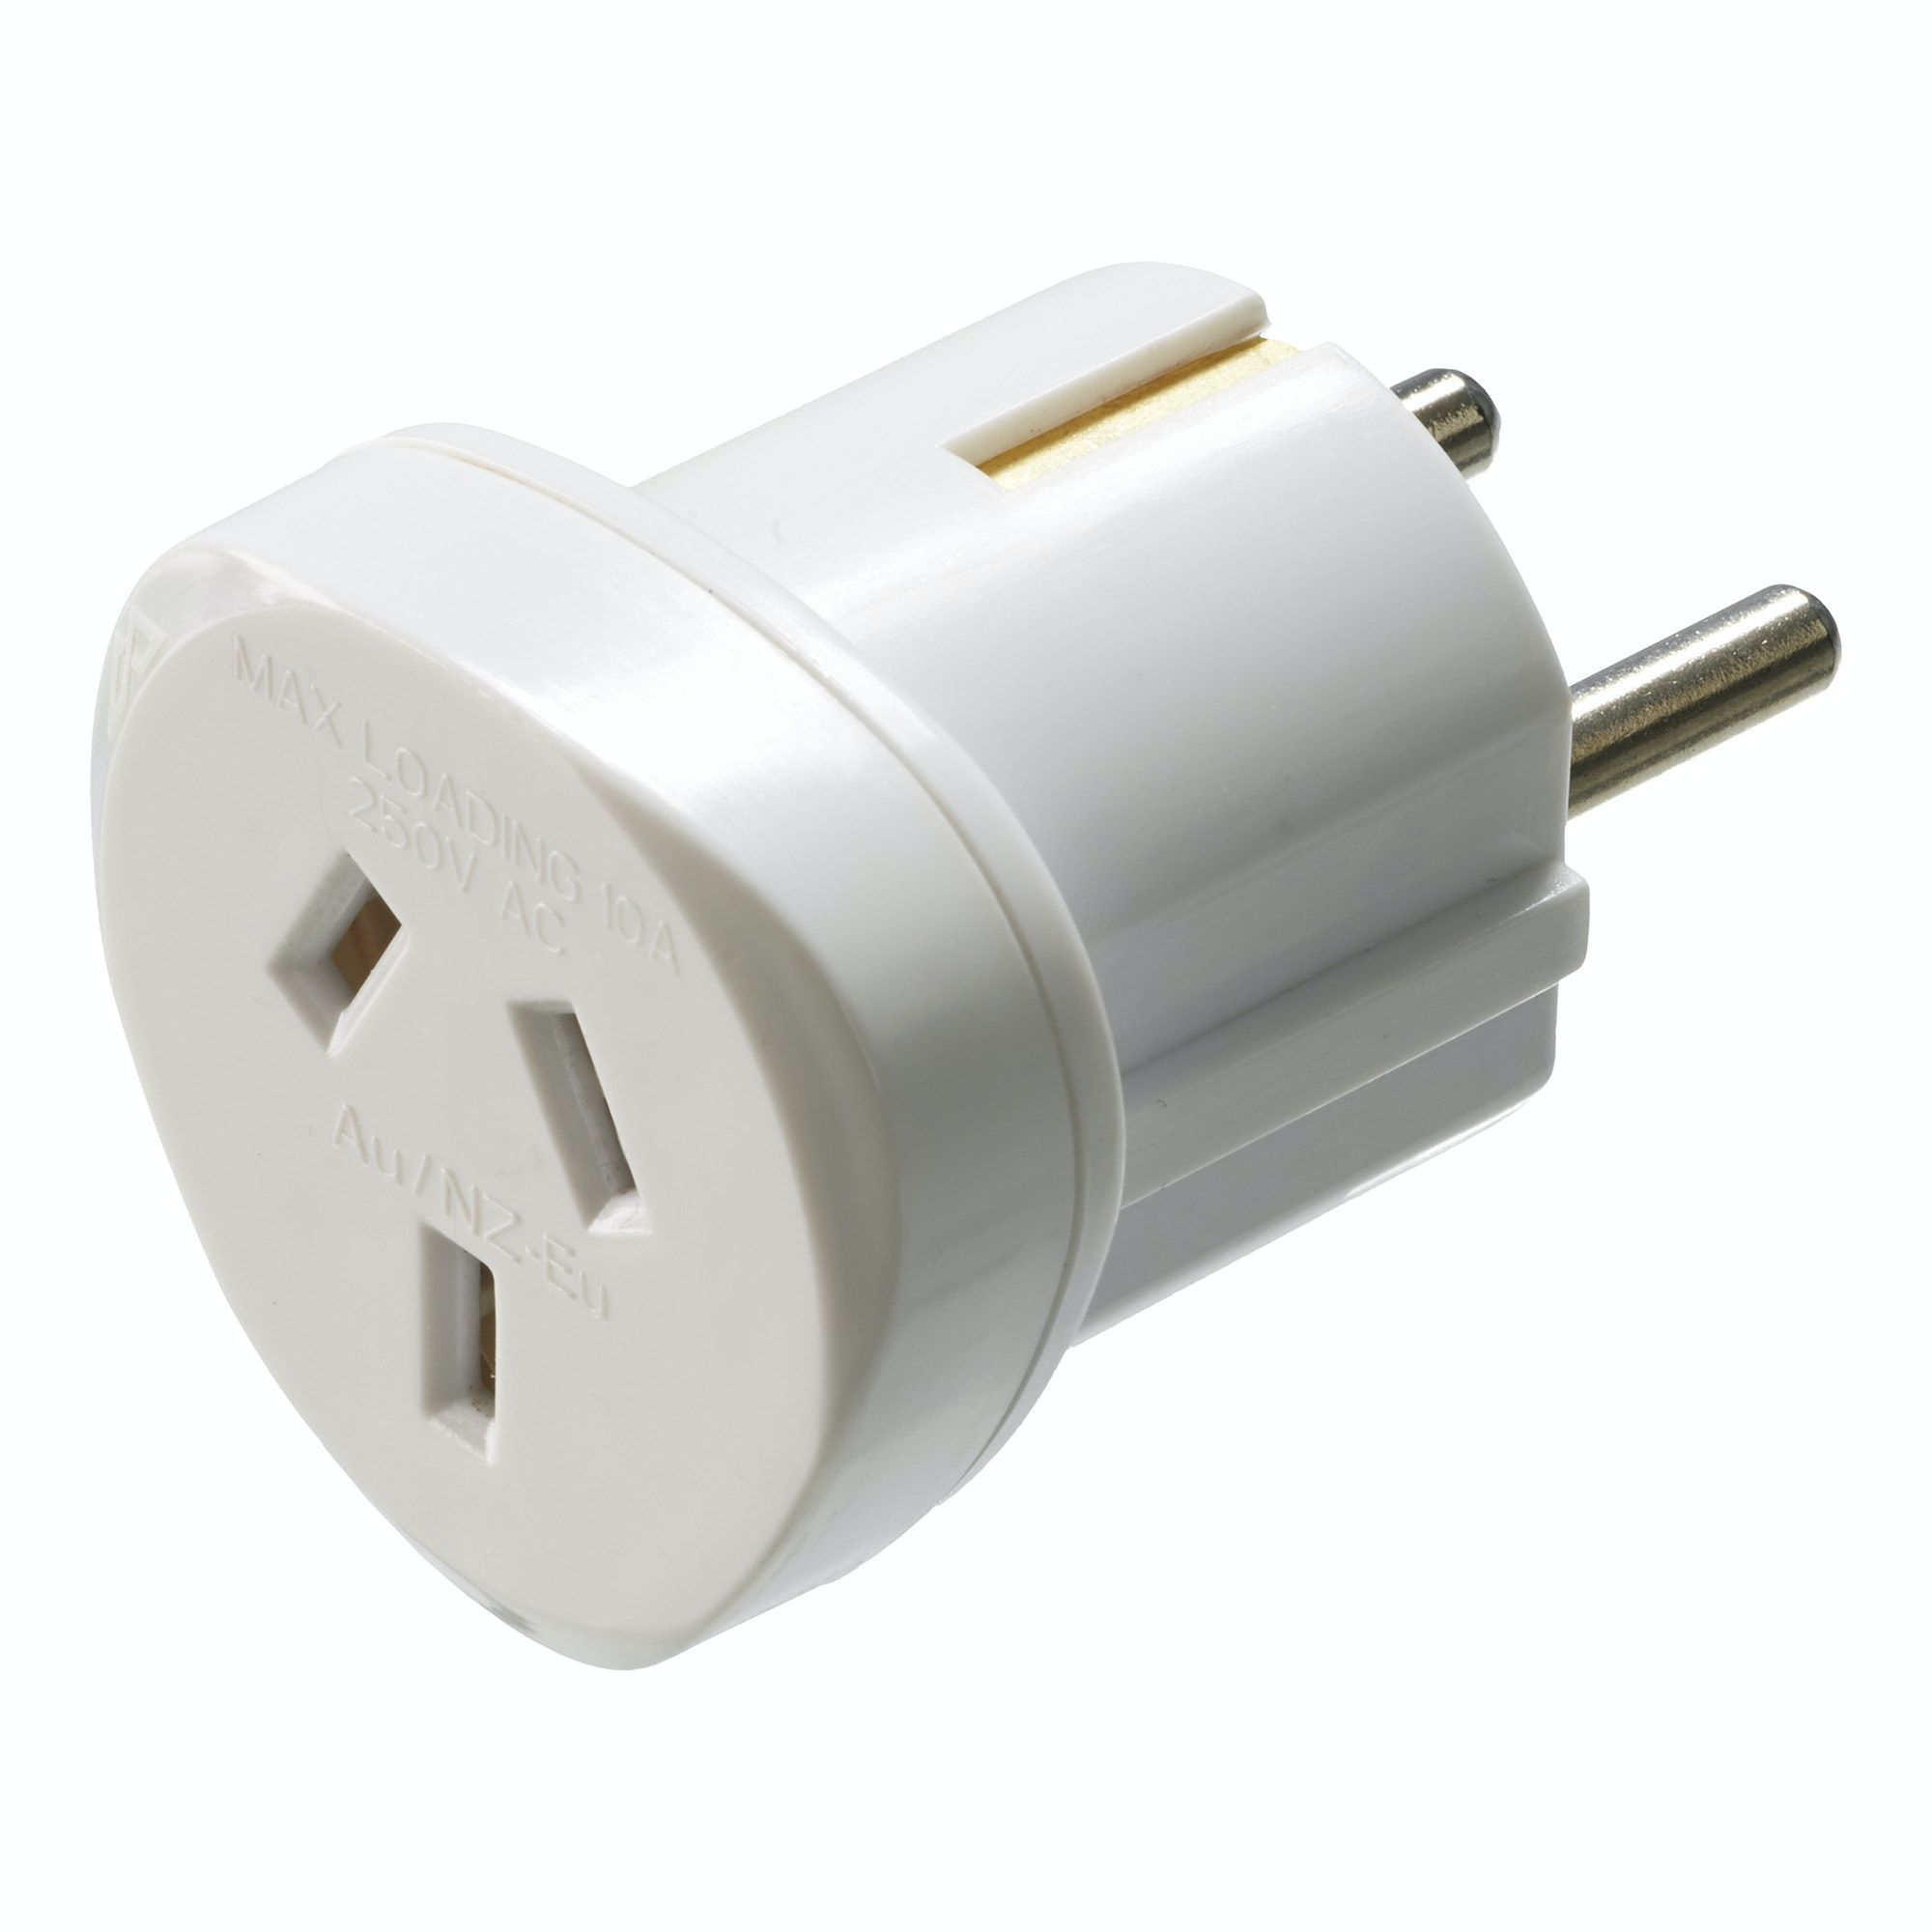 Kathmandu Electrical Ac Power Plug Travel Adaptor